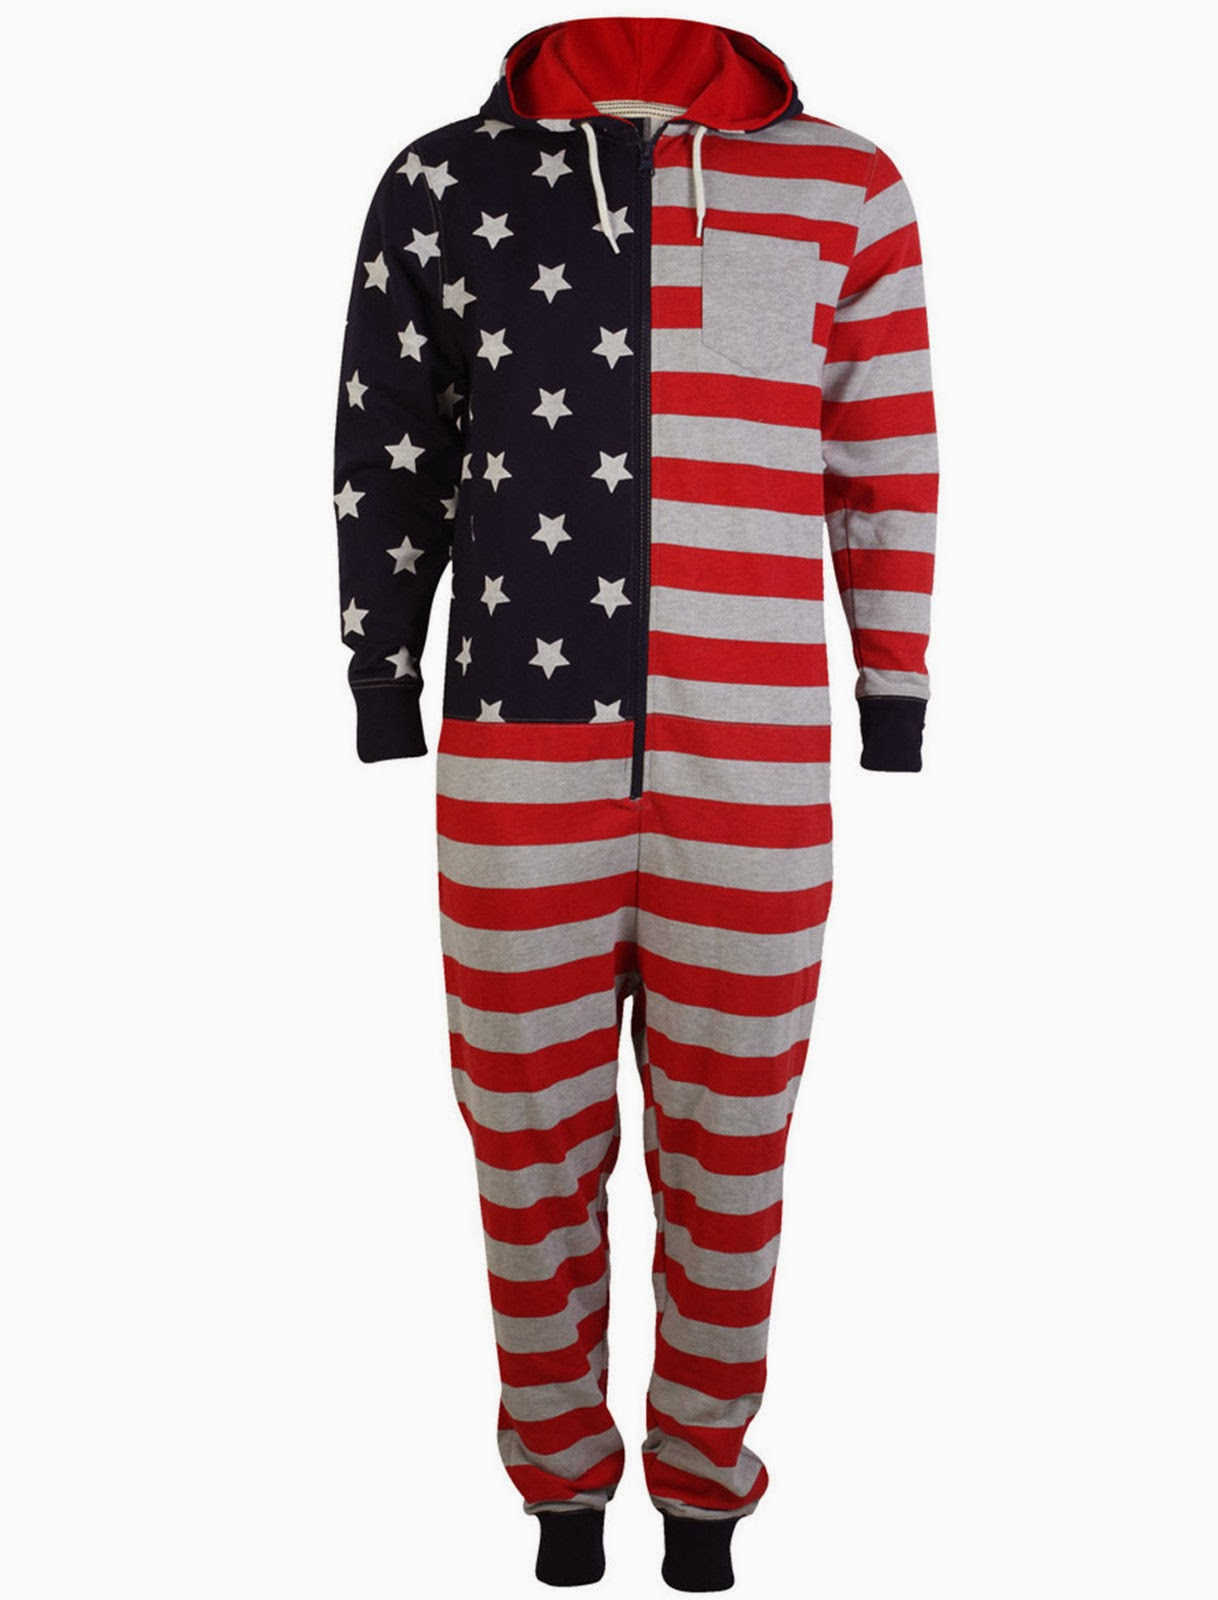 Find great deals on eBay for onesies pajamas. Shop with confidence.